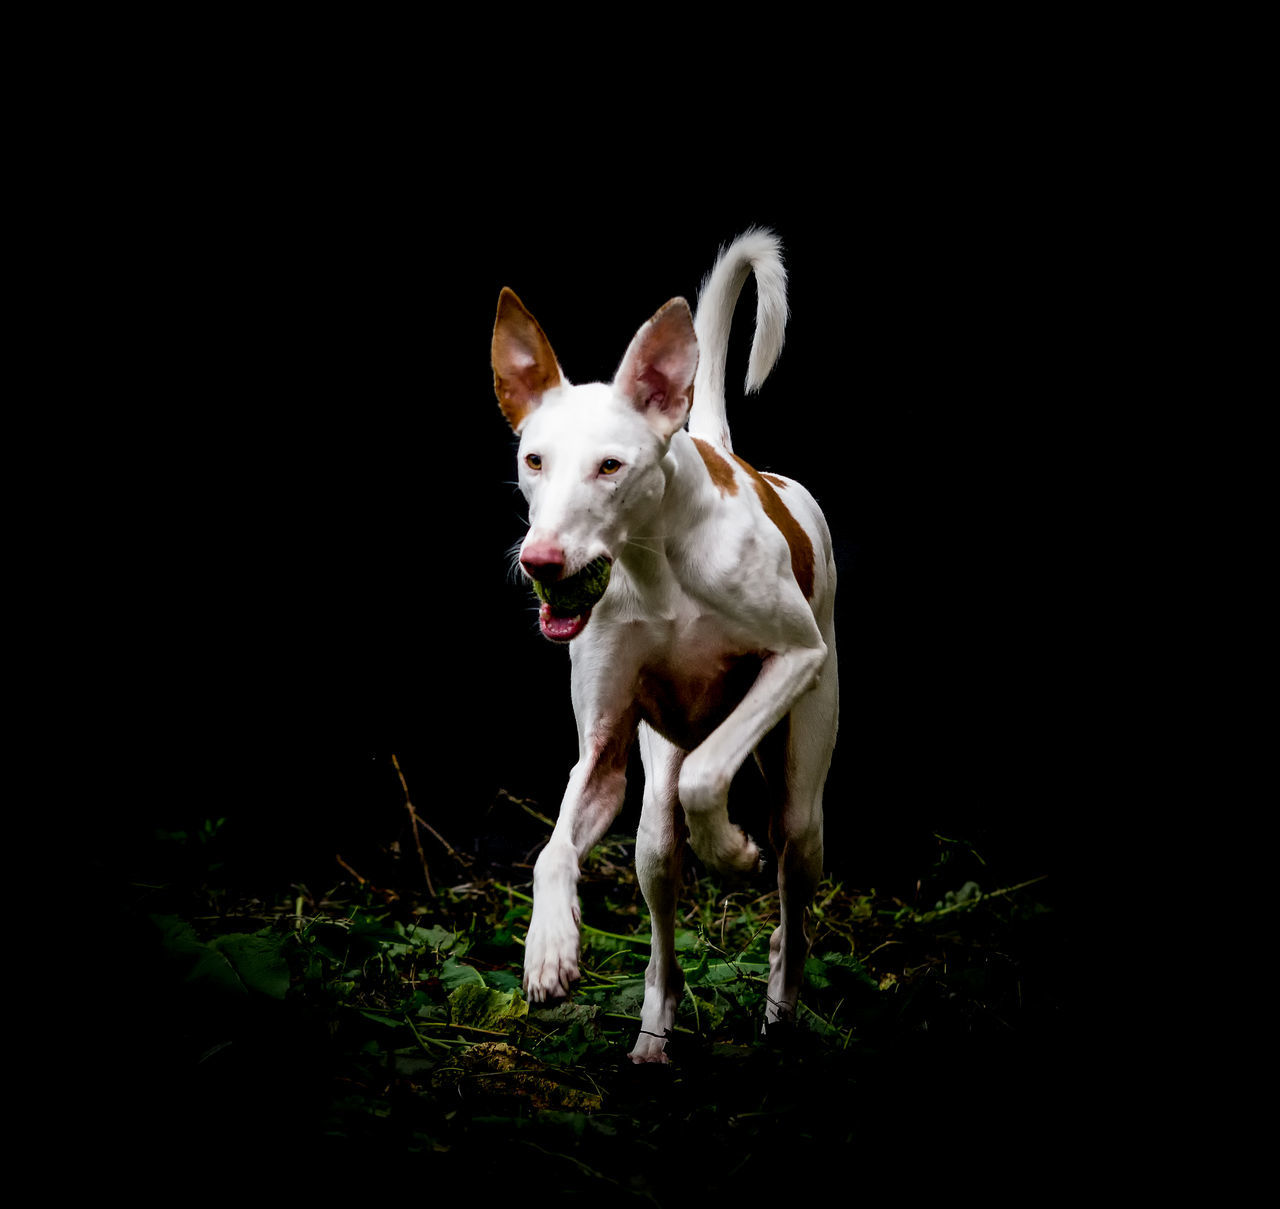 Animal Animal Behavior Animal Themes Curiosity Dog Domestic Animals Front View Full Length Ibizan Hound Loyalty Mammal One Animal Pampered Pets Pets Podenco Ibicenco Spain♥ Spanish Food Standing